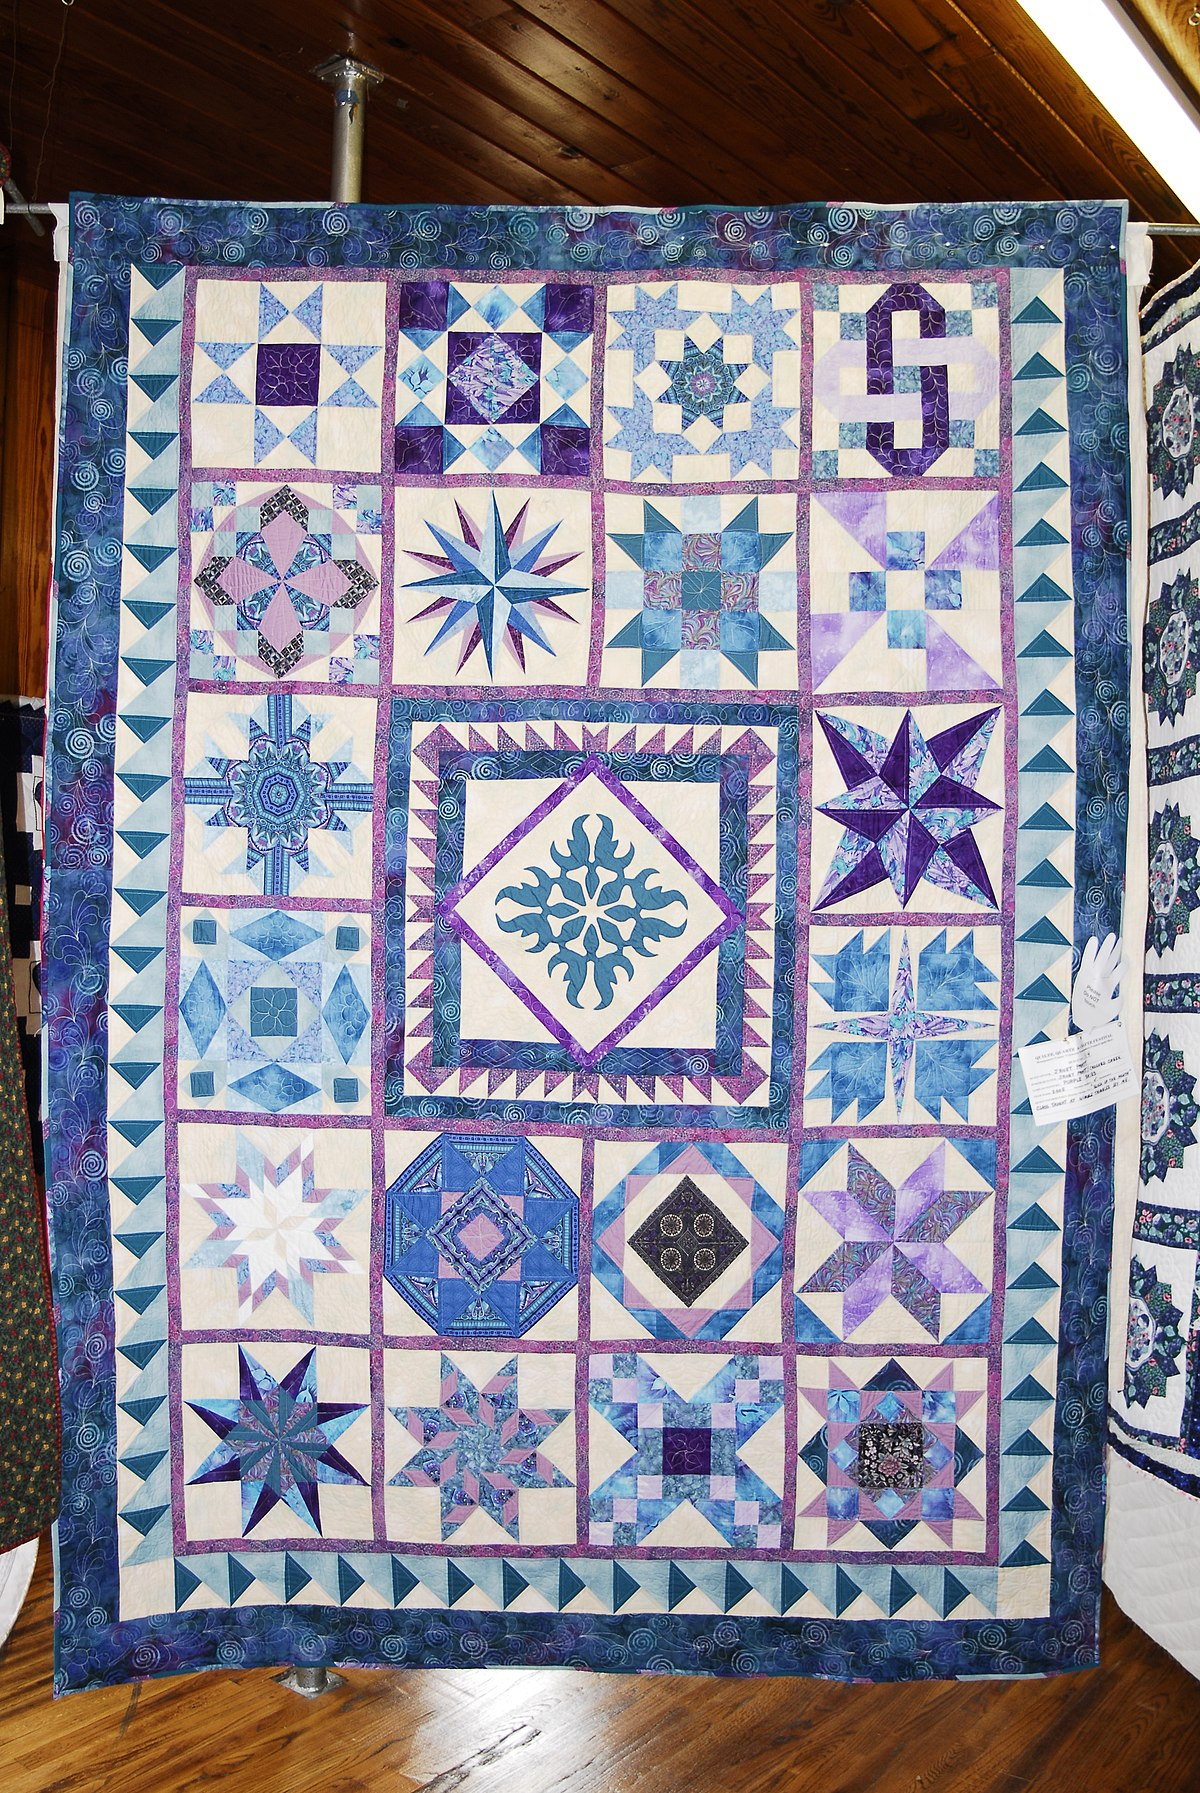 Quilt Simple English Wikipedia The Free Encyclopedia